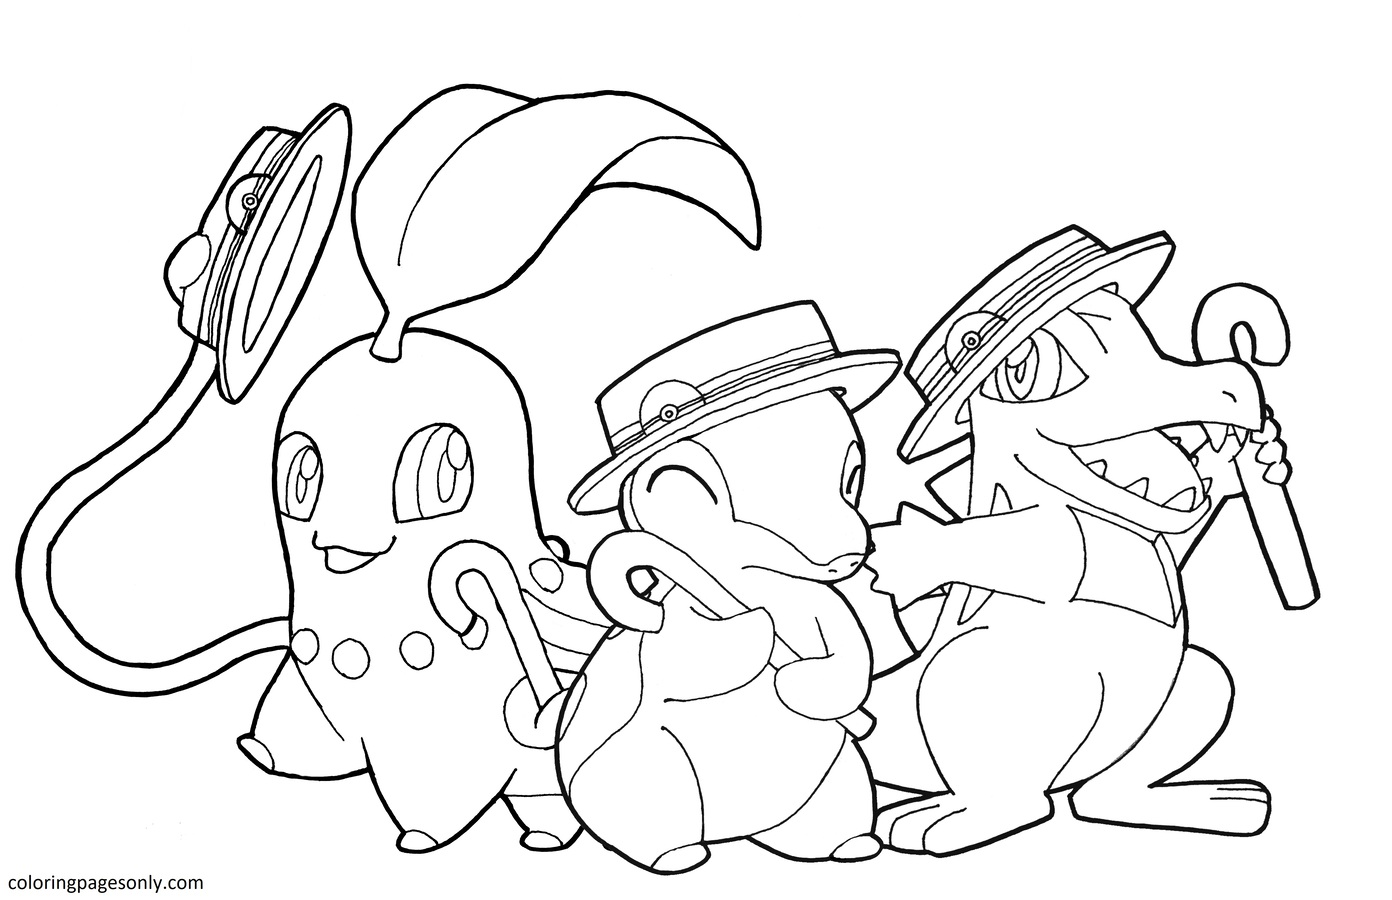 Totodile And Chikorita, Cyndaquil Coloring Page